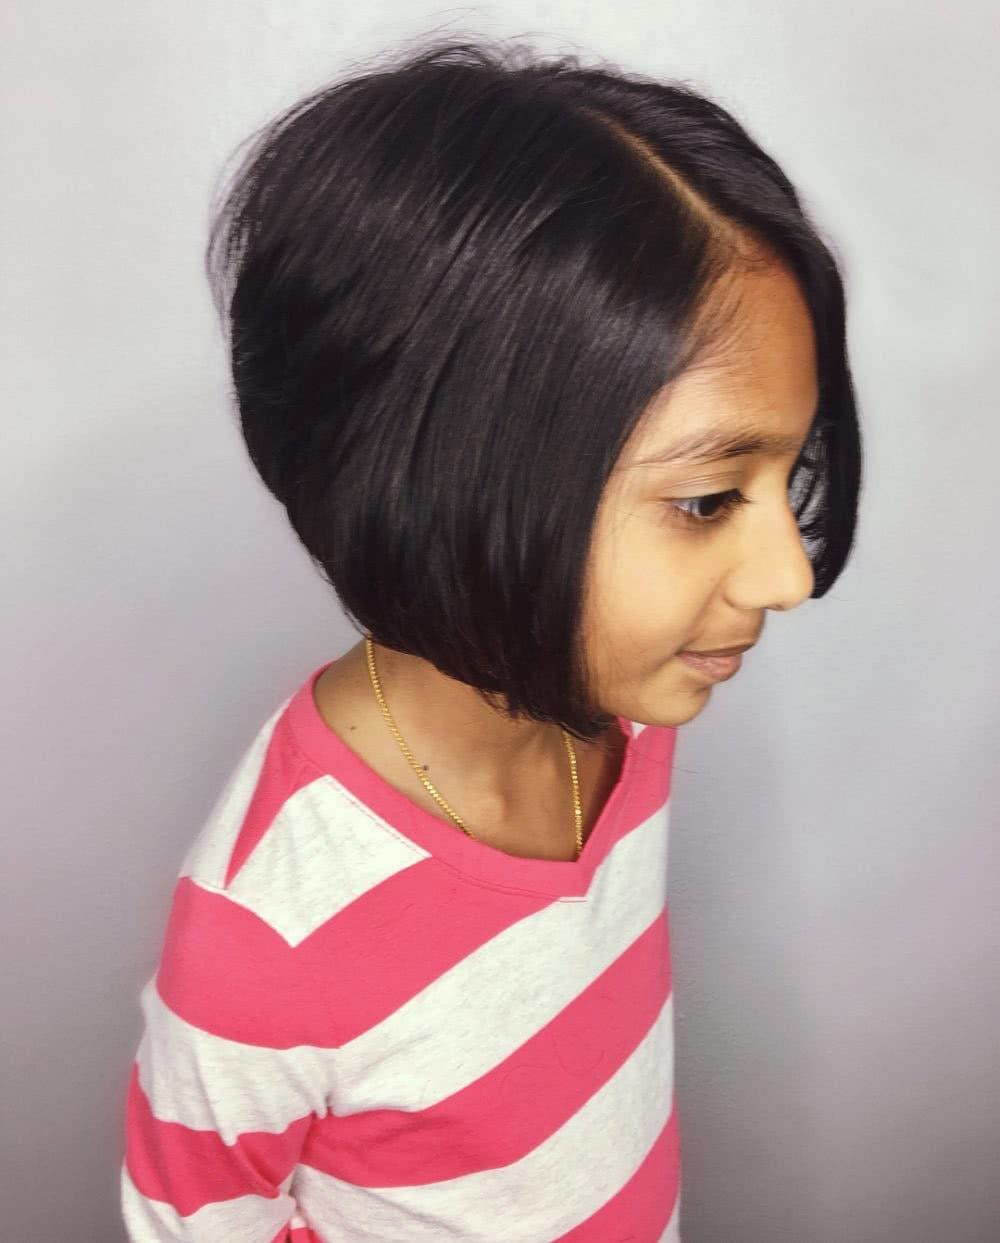 New 29 Cutest Little Girl Hairstyles For 2019 Ideas With Pictures